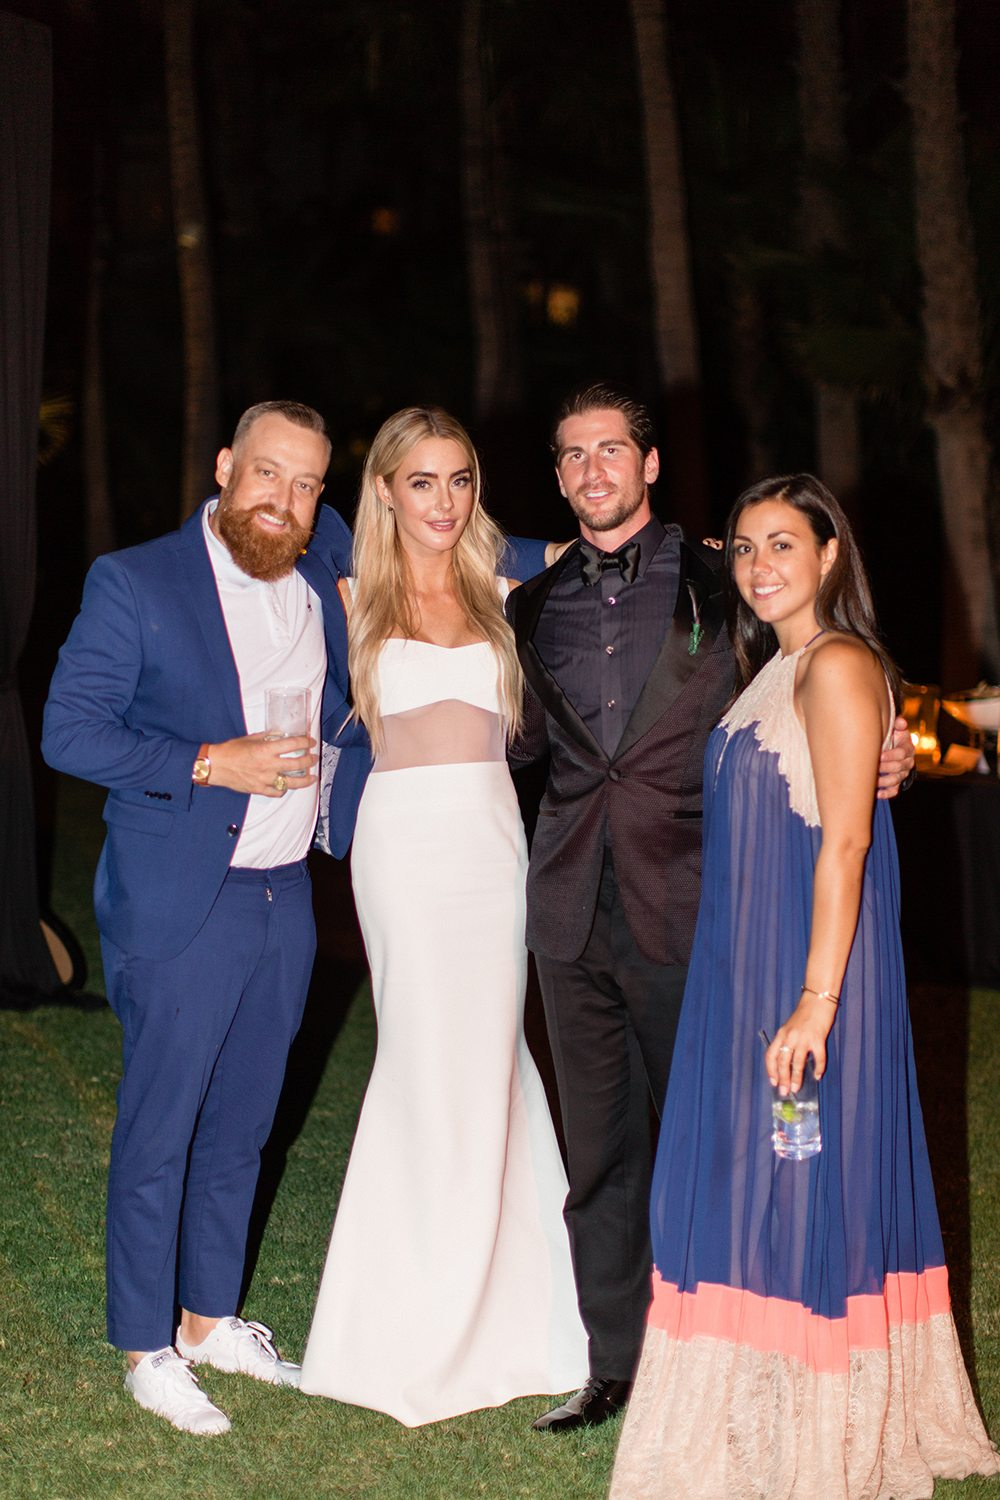 the wedding | the skinny confidential